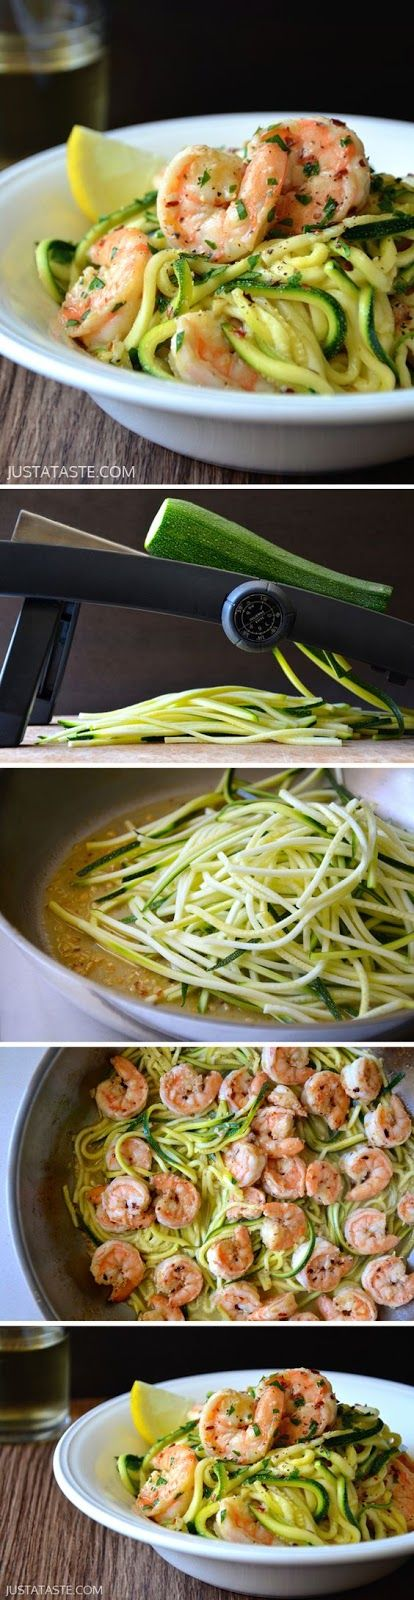 Weight Loss Tips: Skinny Shrimp Scampi with Zucchini Noodles